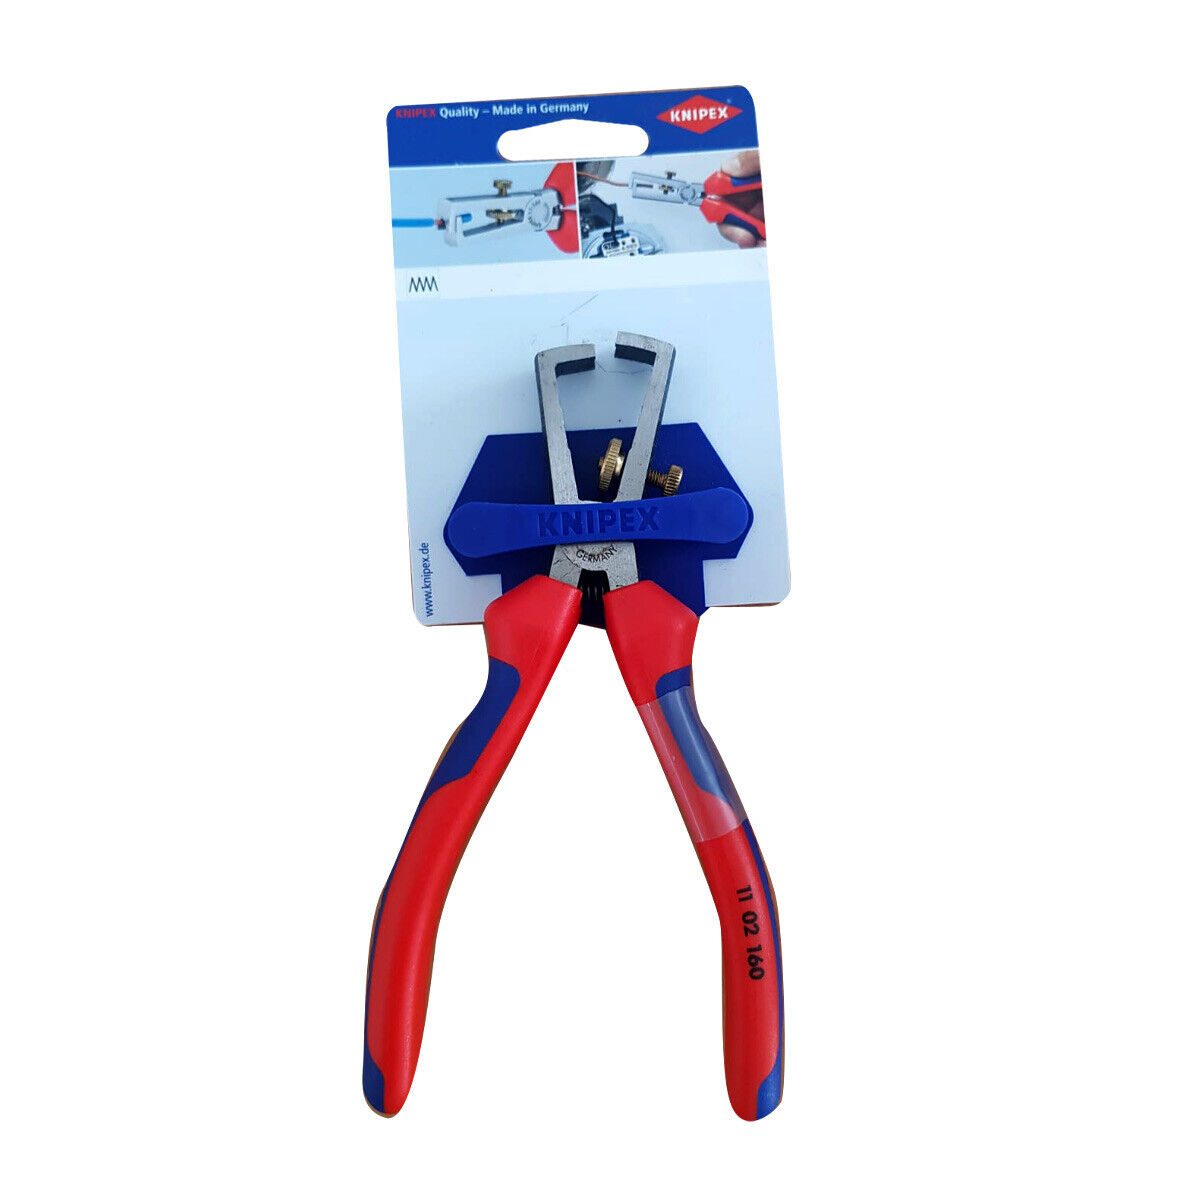 Knipex Abisolierzange poliert 11 02 160 160mm